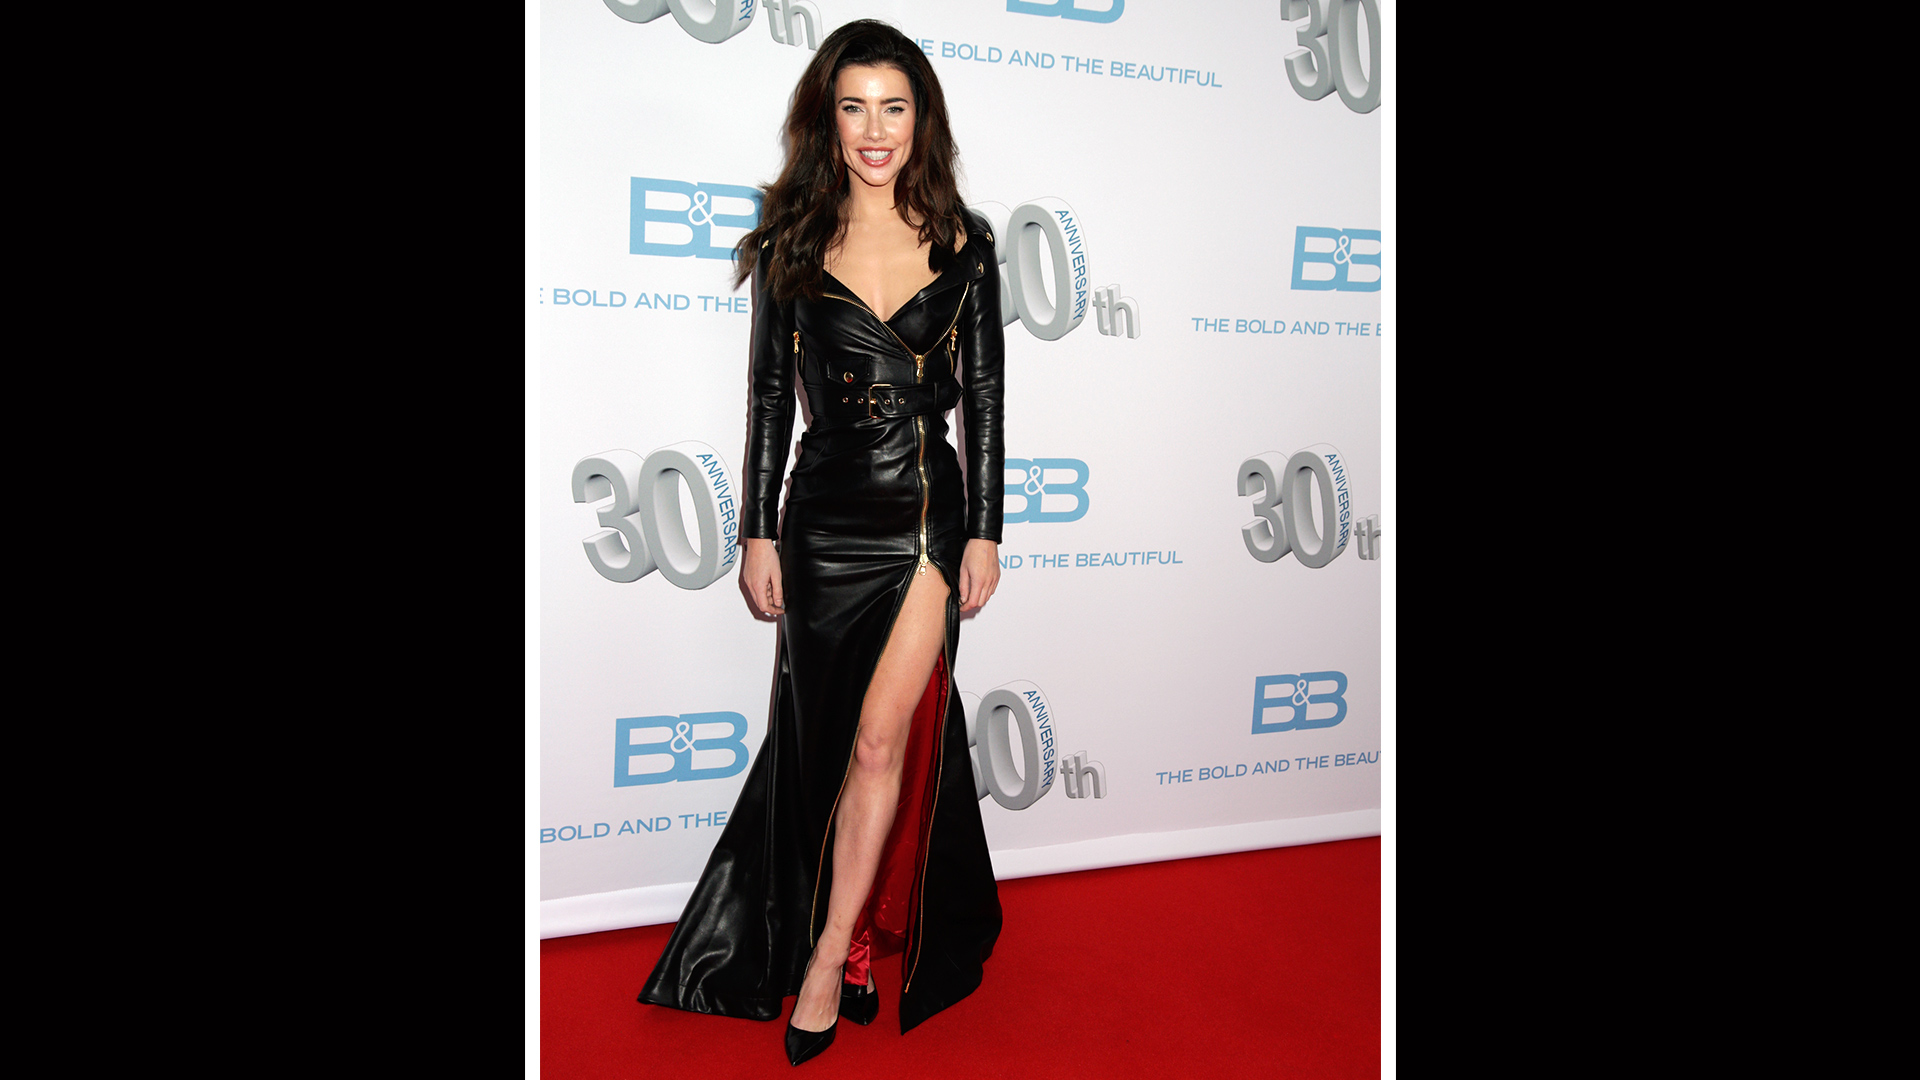 Jacqueline MacInnes Wood makes an appearance in an edgy leather dress.